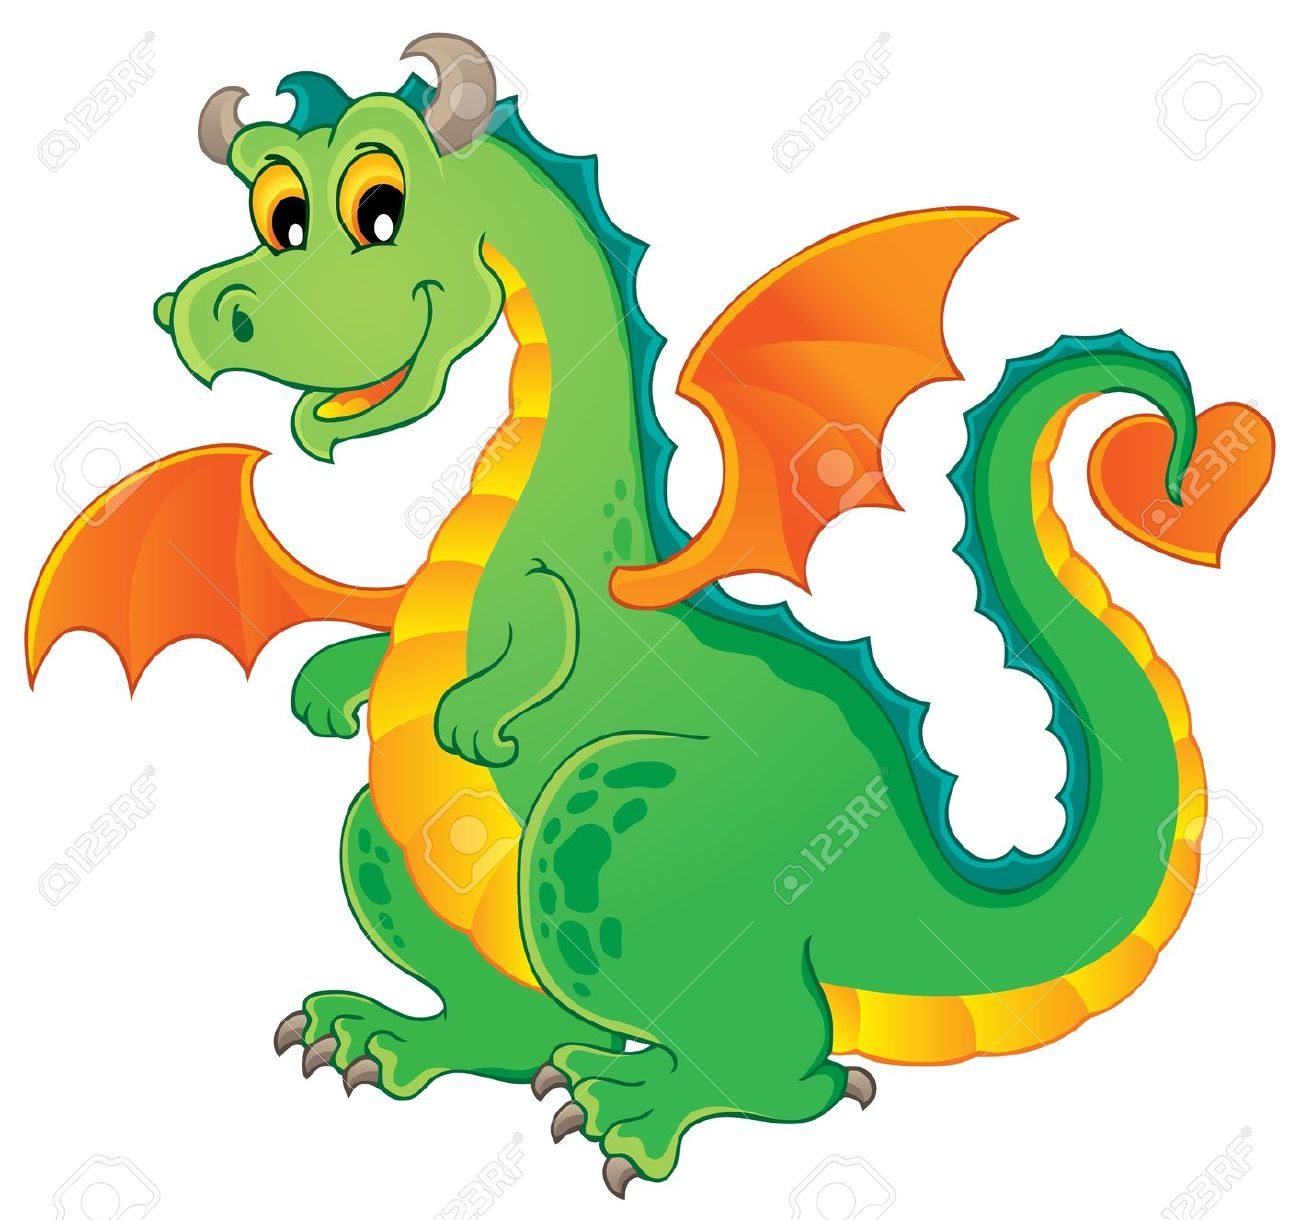 dragons clipartlook. Clipart dragon